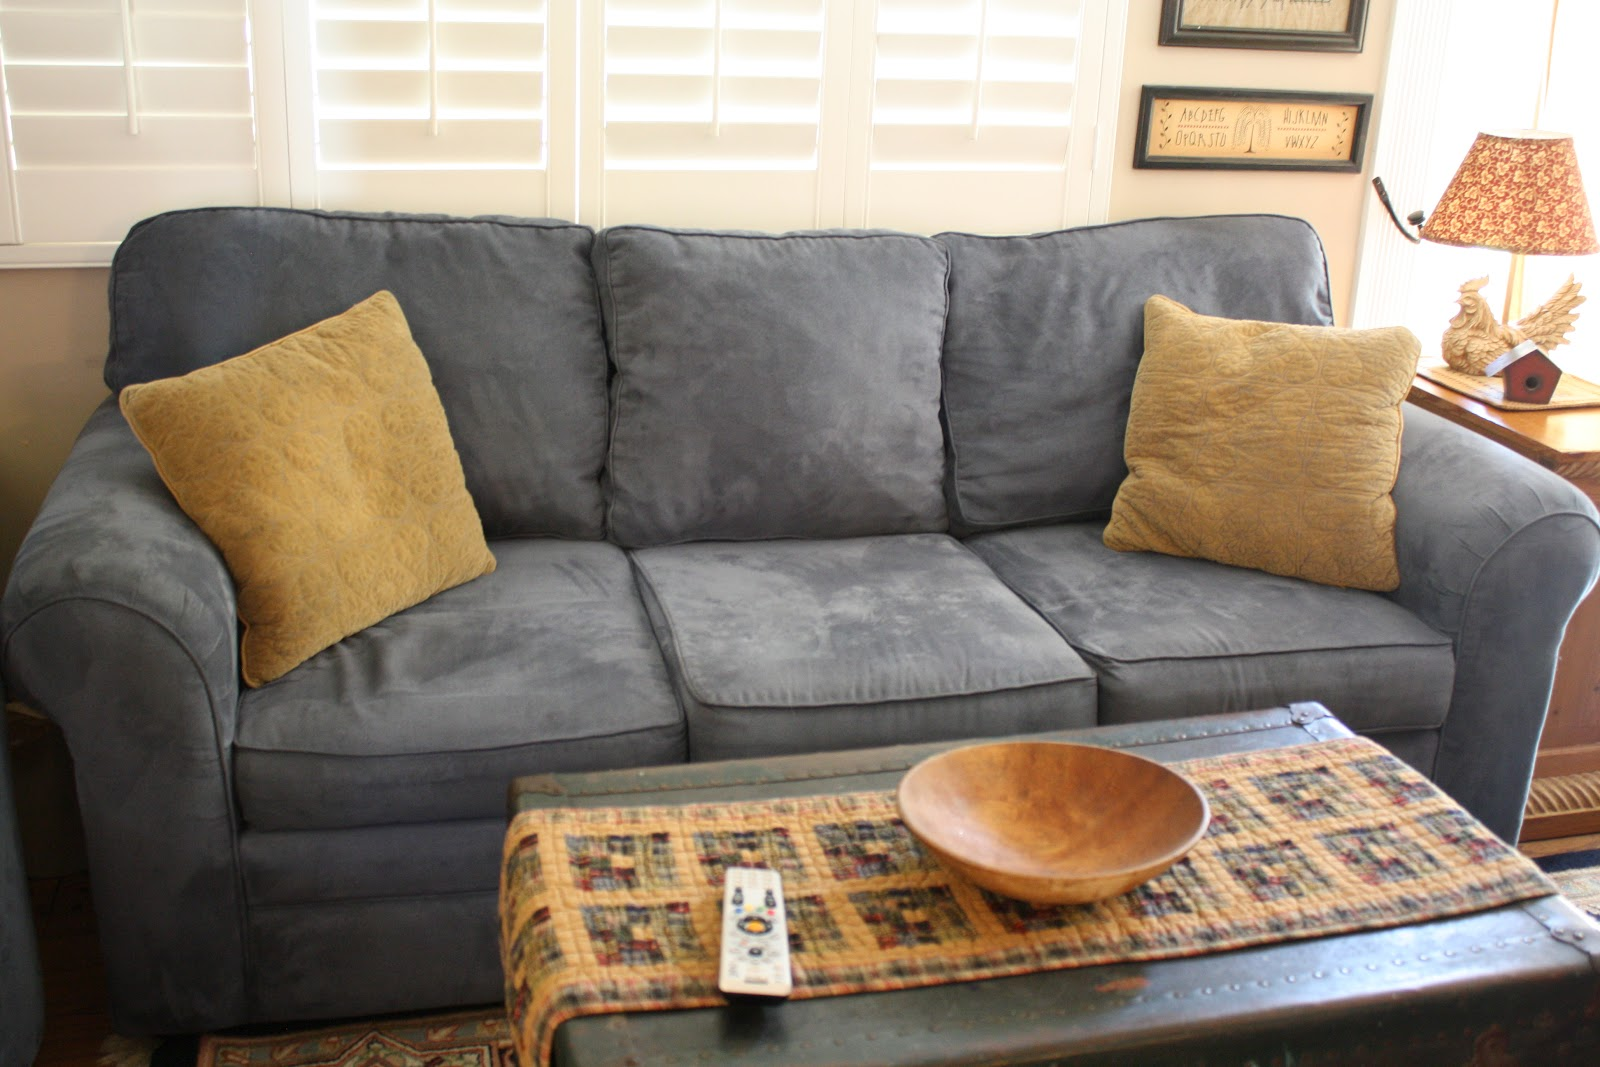 Refilling Sofa Cushions Big Uk Sunny Simple Life How To Refill Couch Cheaply